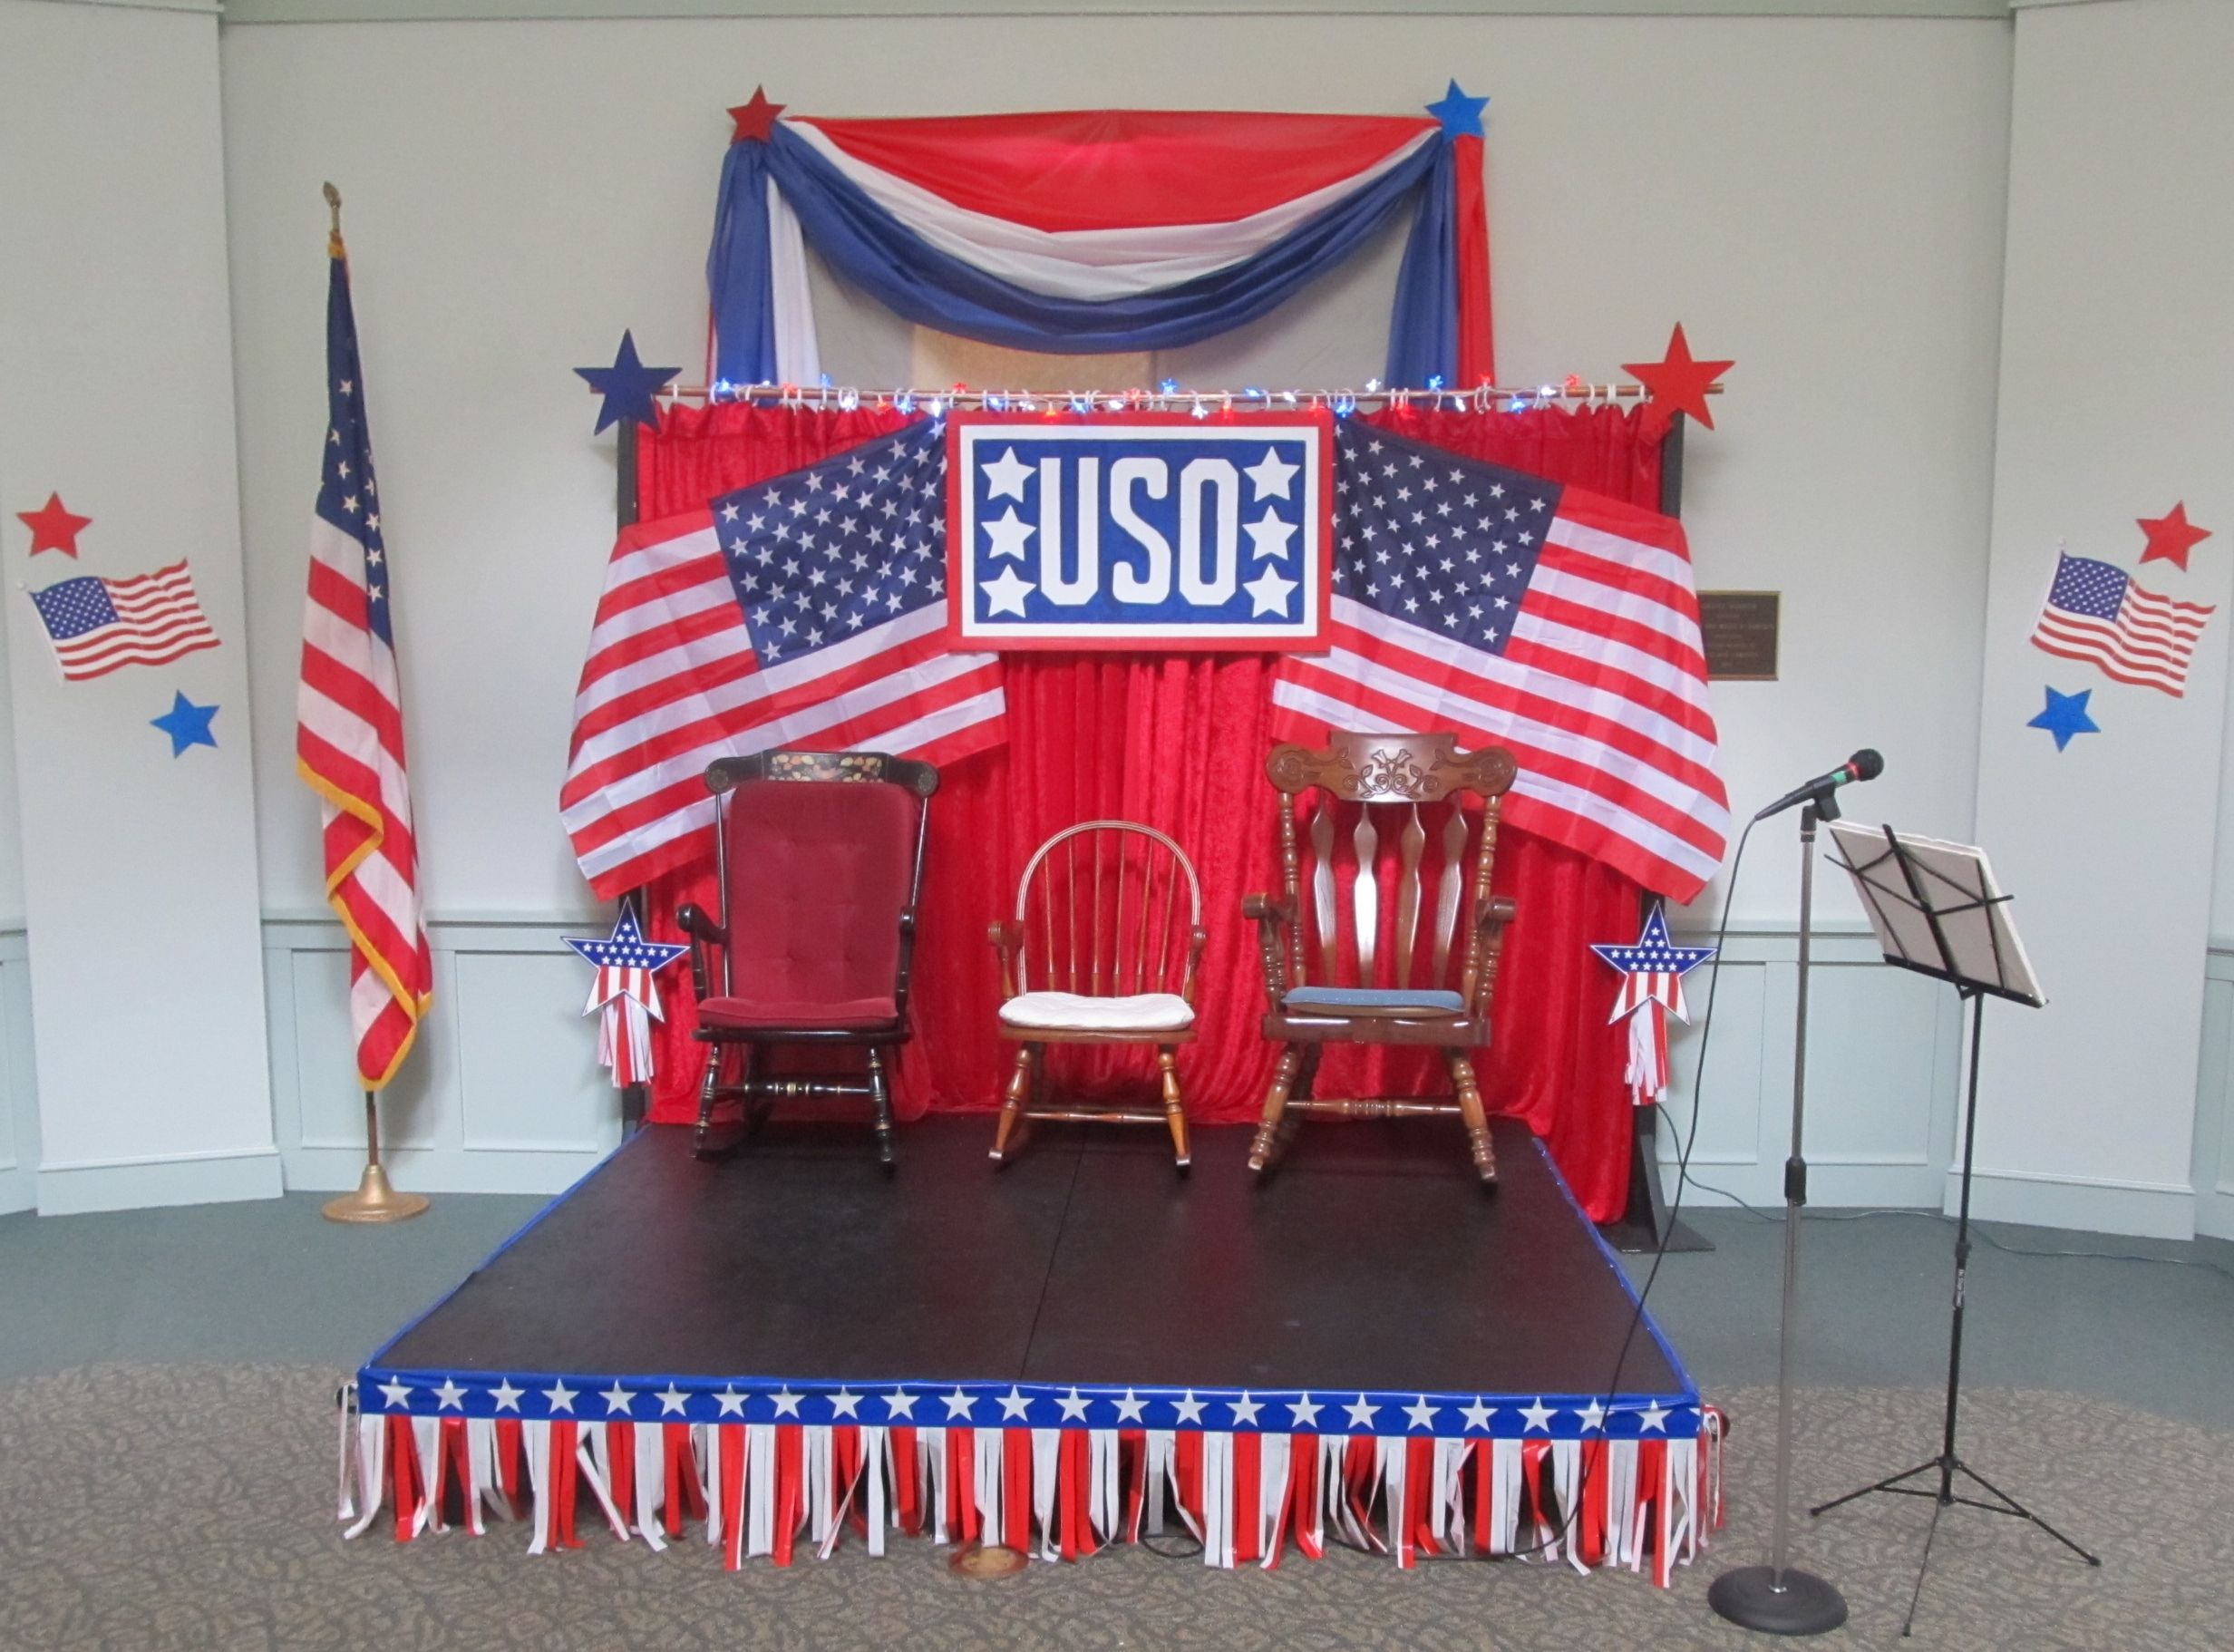 The Stage From Our Uso Show Themed Big Event With Images